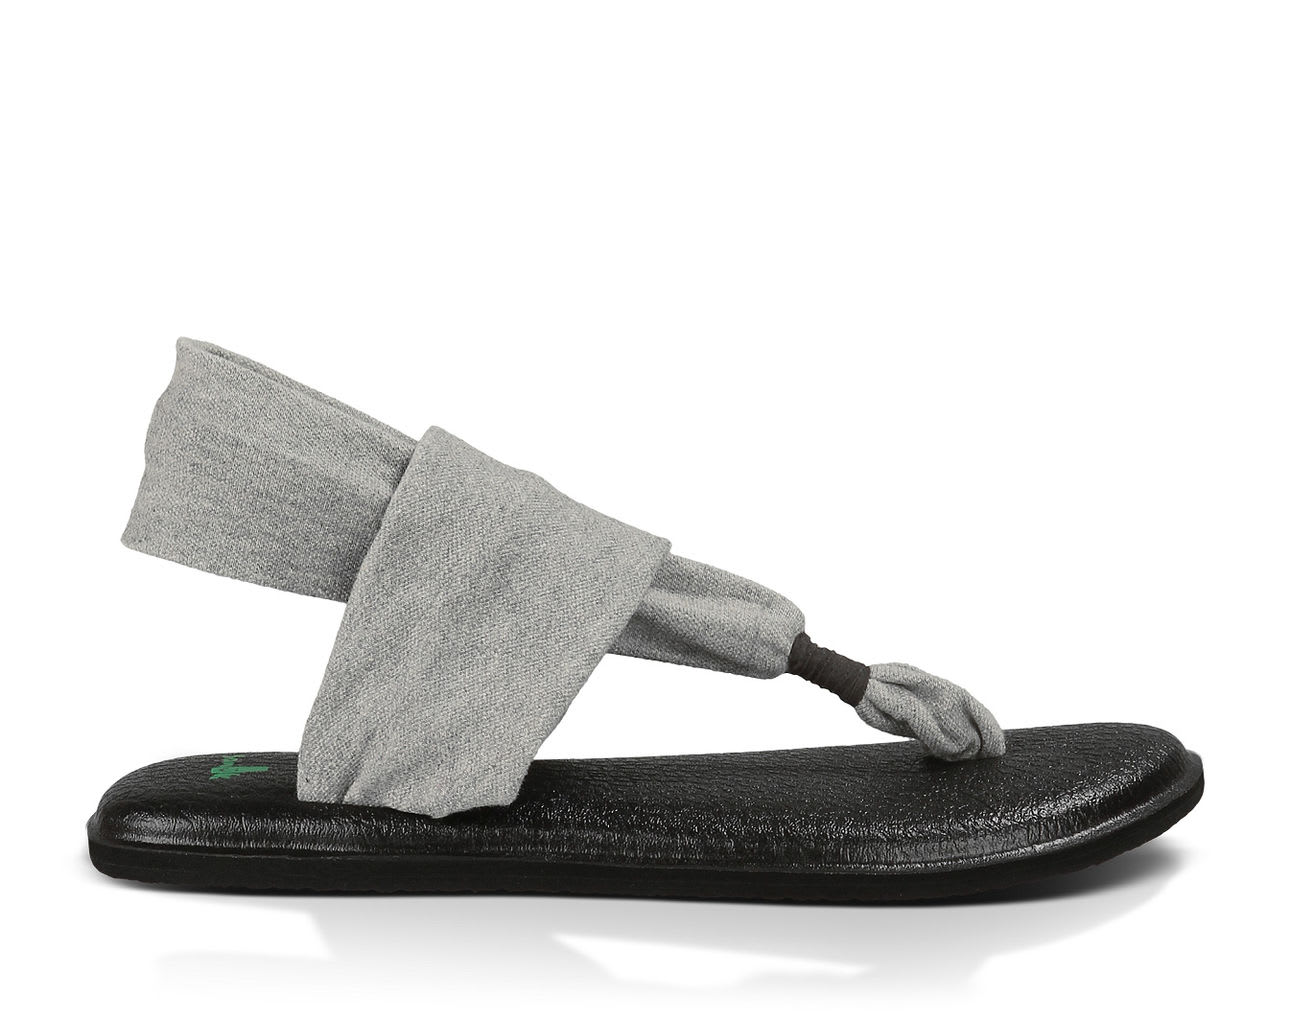 On Sale Sanuk Yoga Sling 2 Sandals - Womens up to 45% off